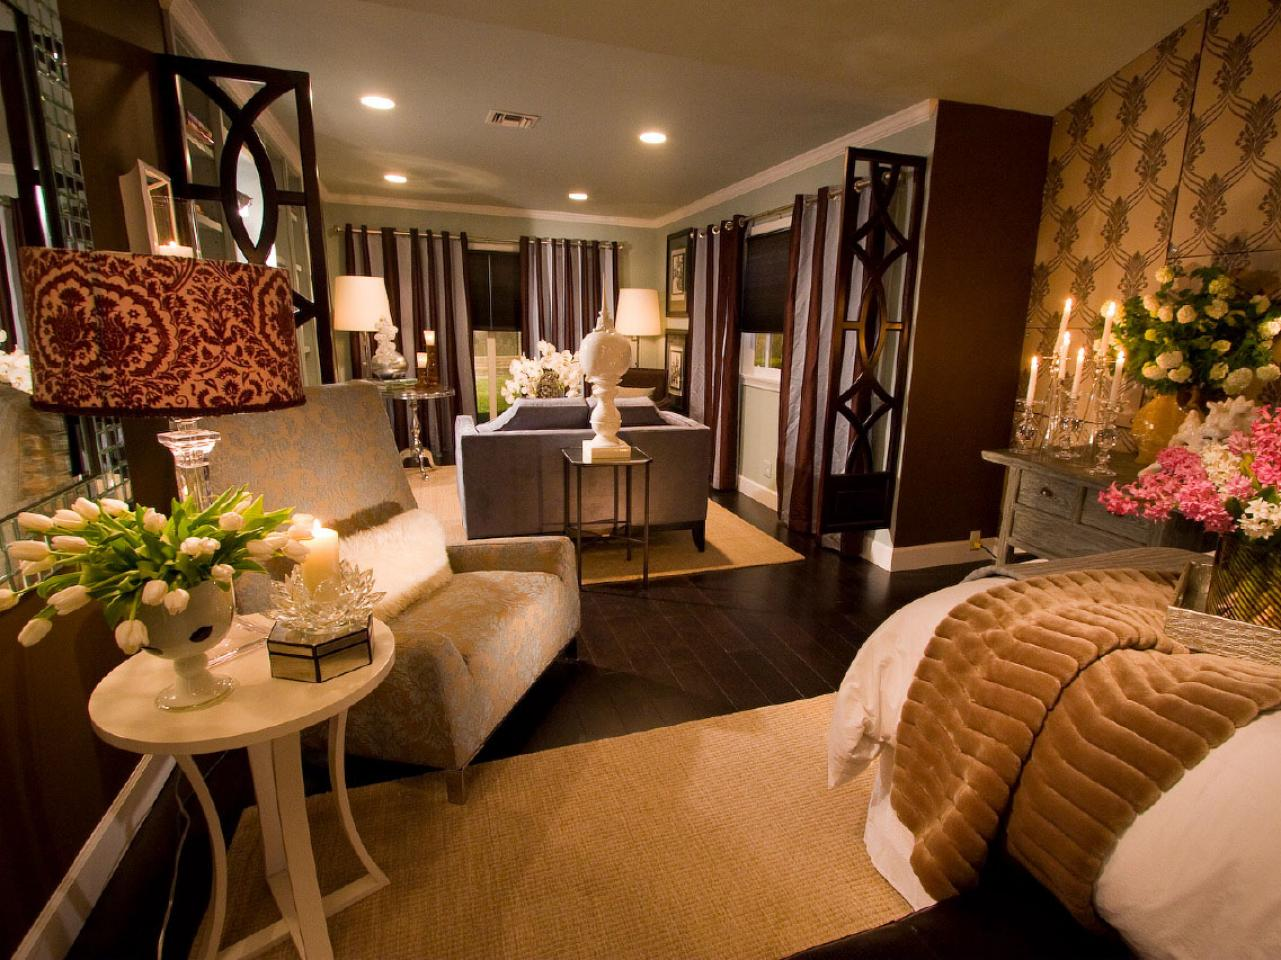 Interior Bedroom Furniture Arrangement Ideas bedroom layout ideas hgtv designer tips for an ideal layout